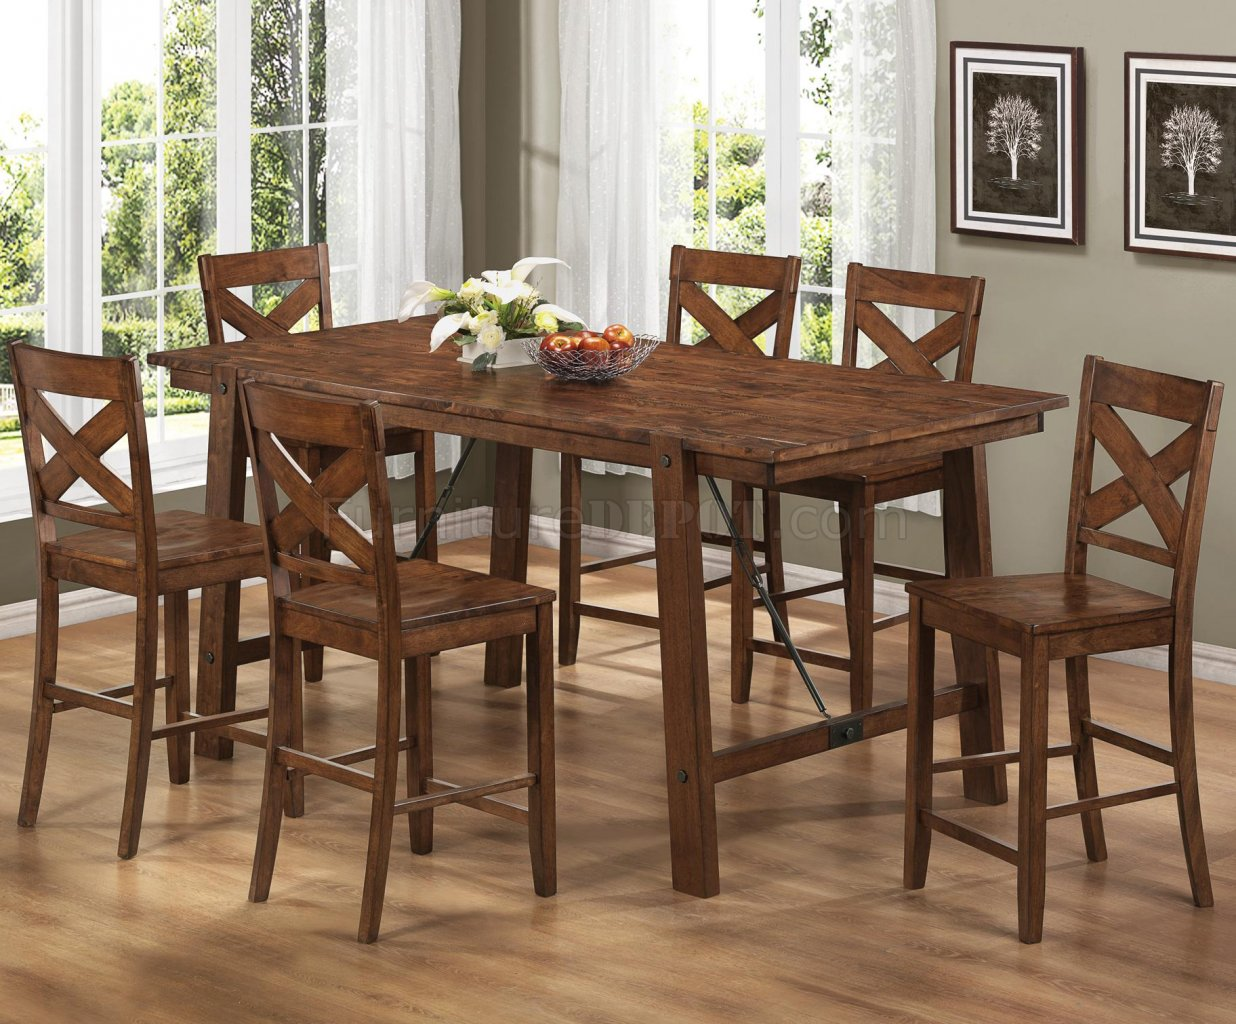 104188 Lawson Counter Height Dining Table by Coaster w/Options